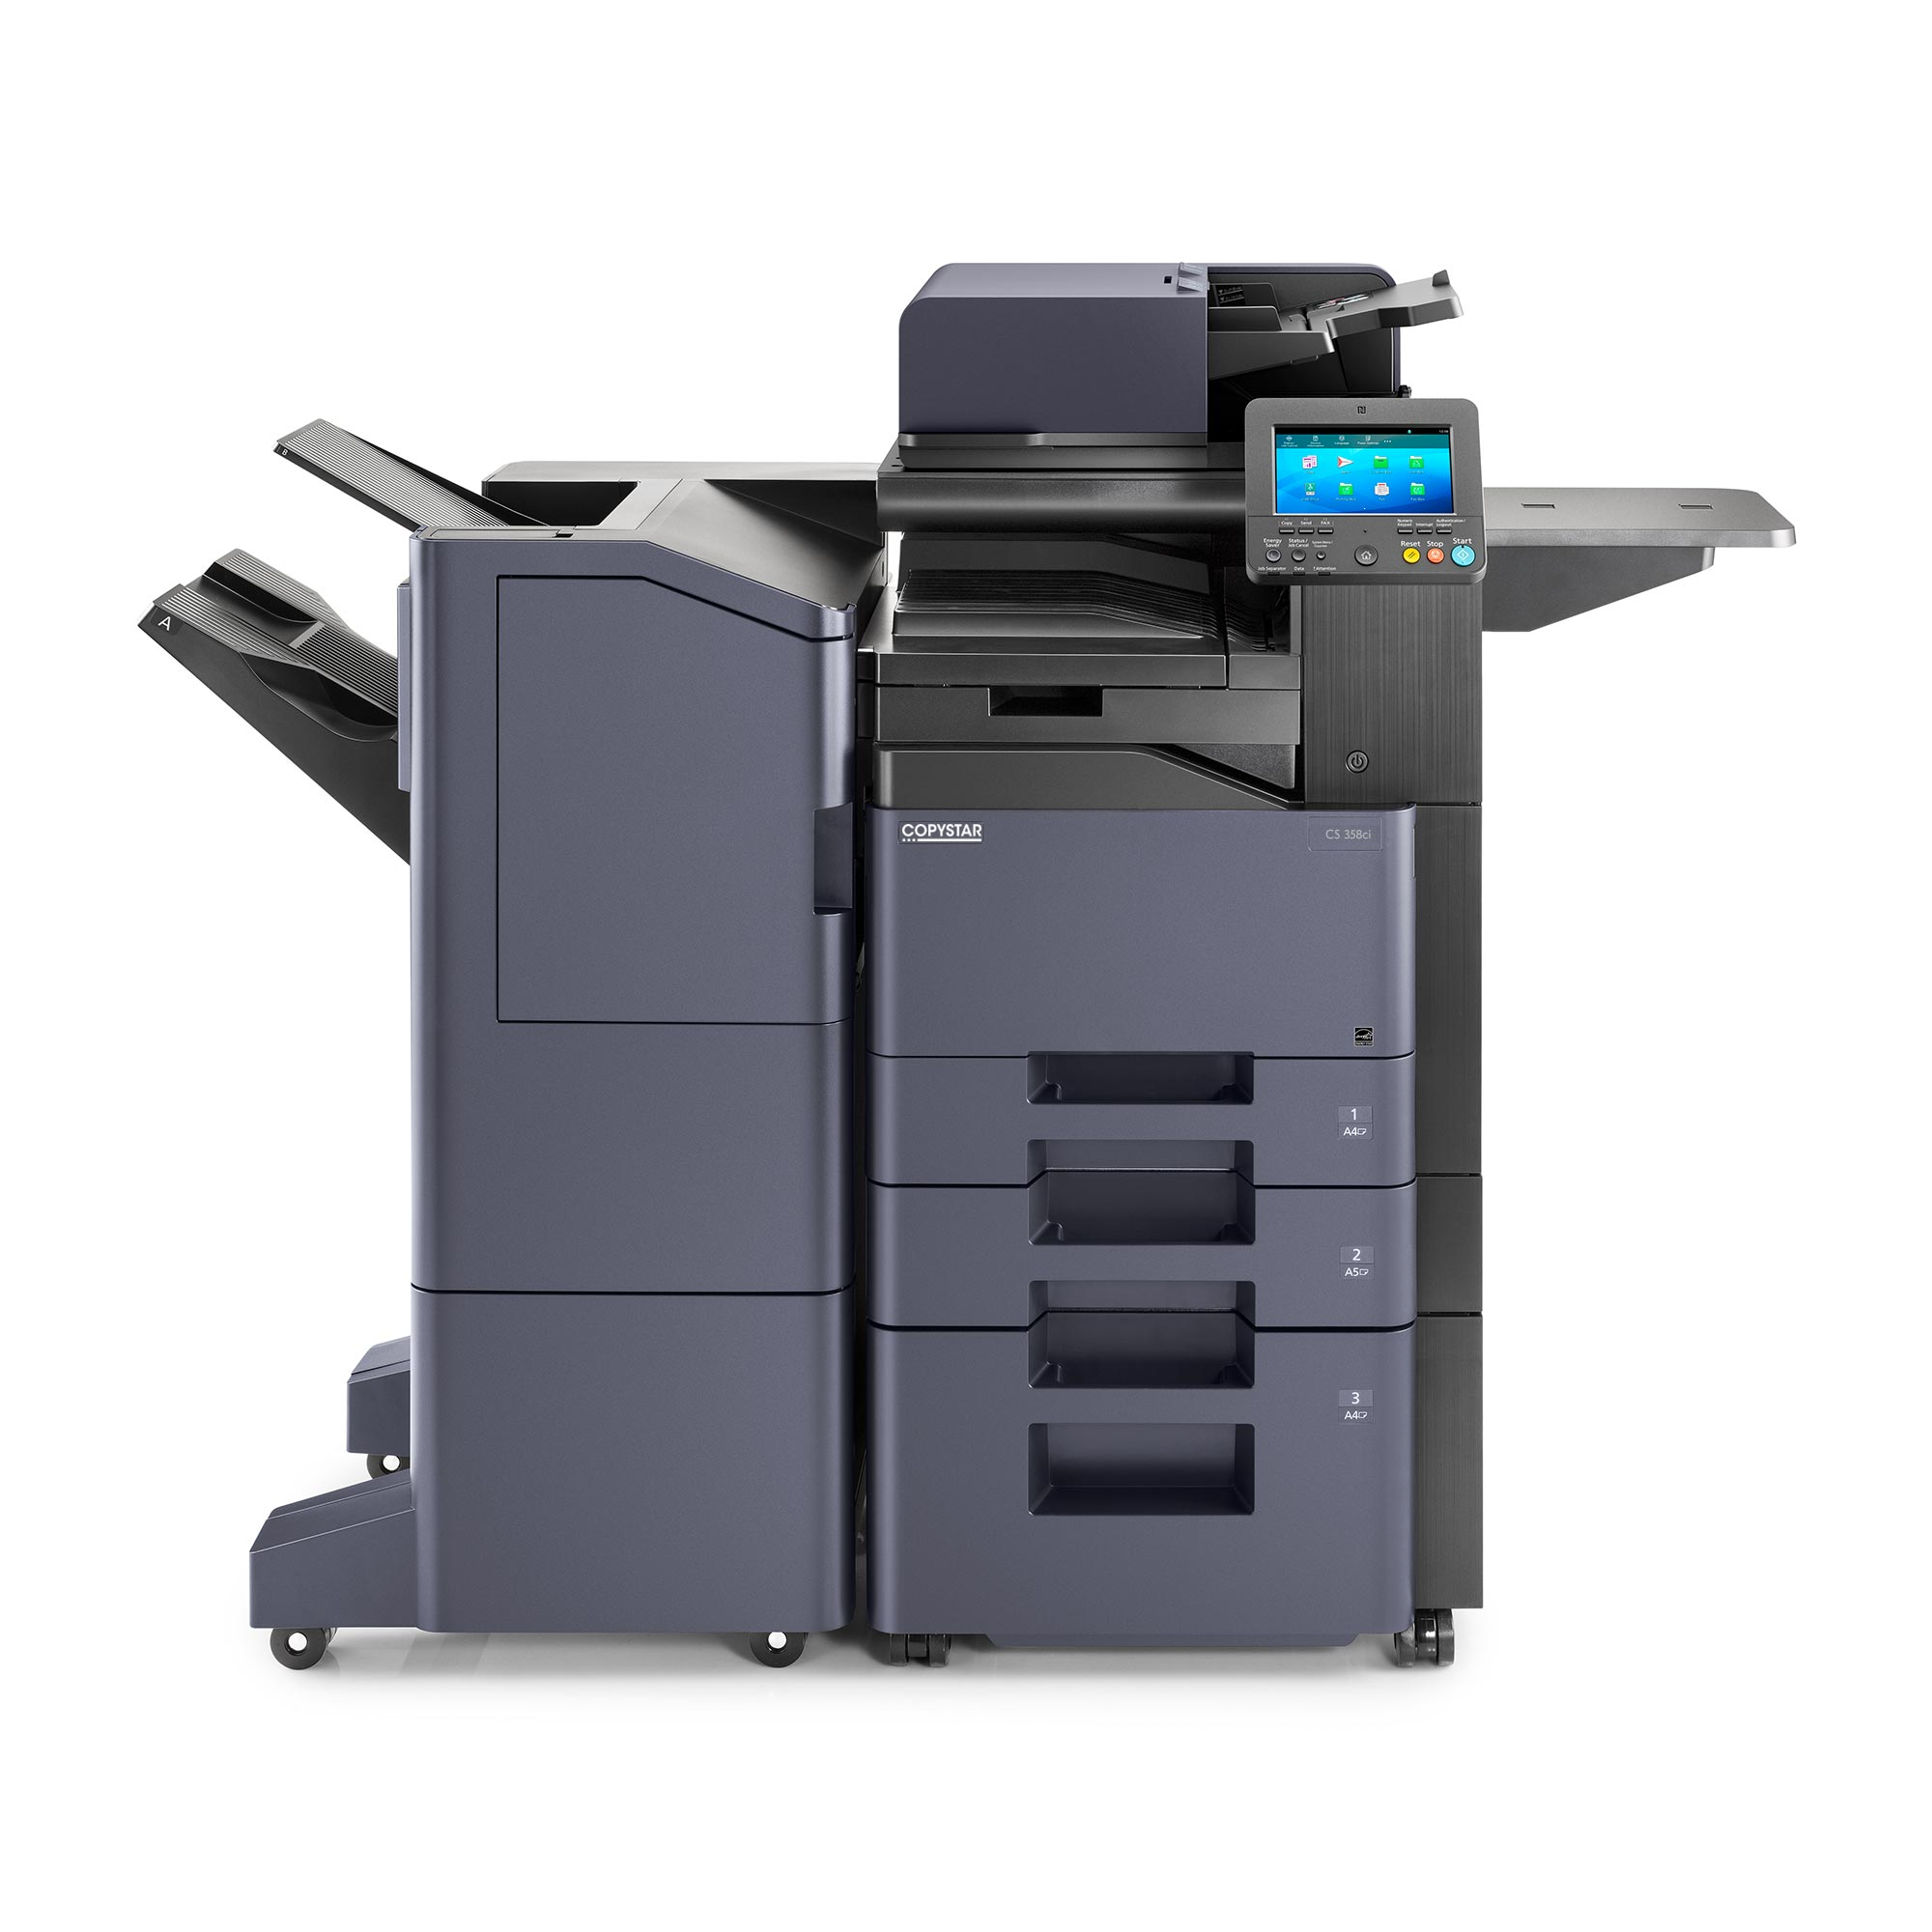 Kyocera CS_358ci Copy Machine Rental 55959, 55987